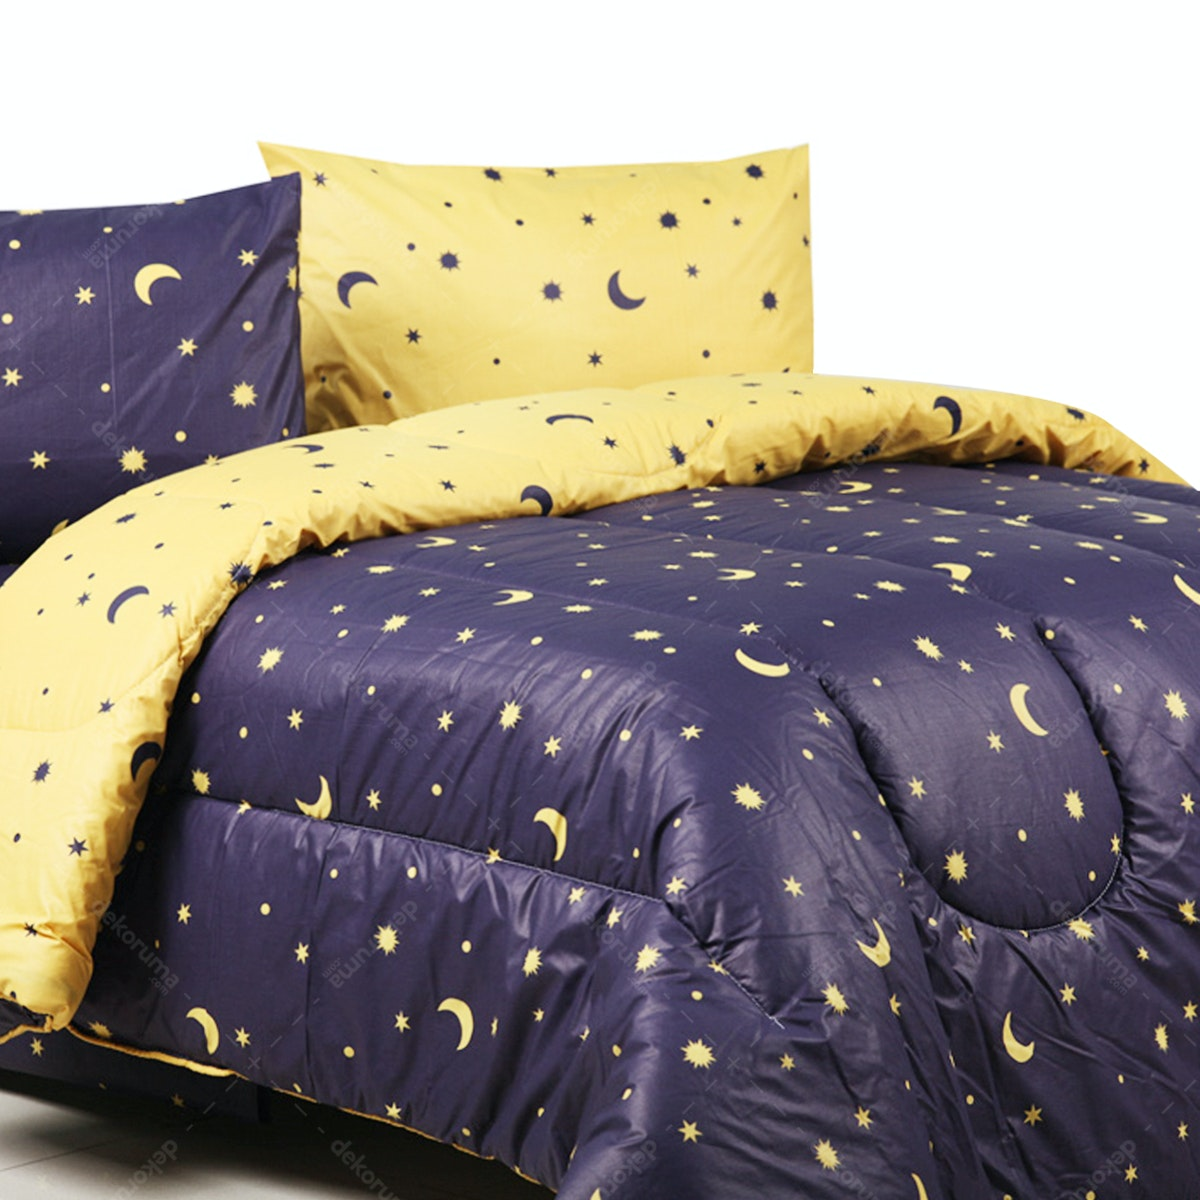 Sierra Bed Cover Dan Sprei Starry Night Navy Mix Kuning 180x200